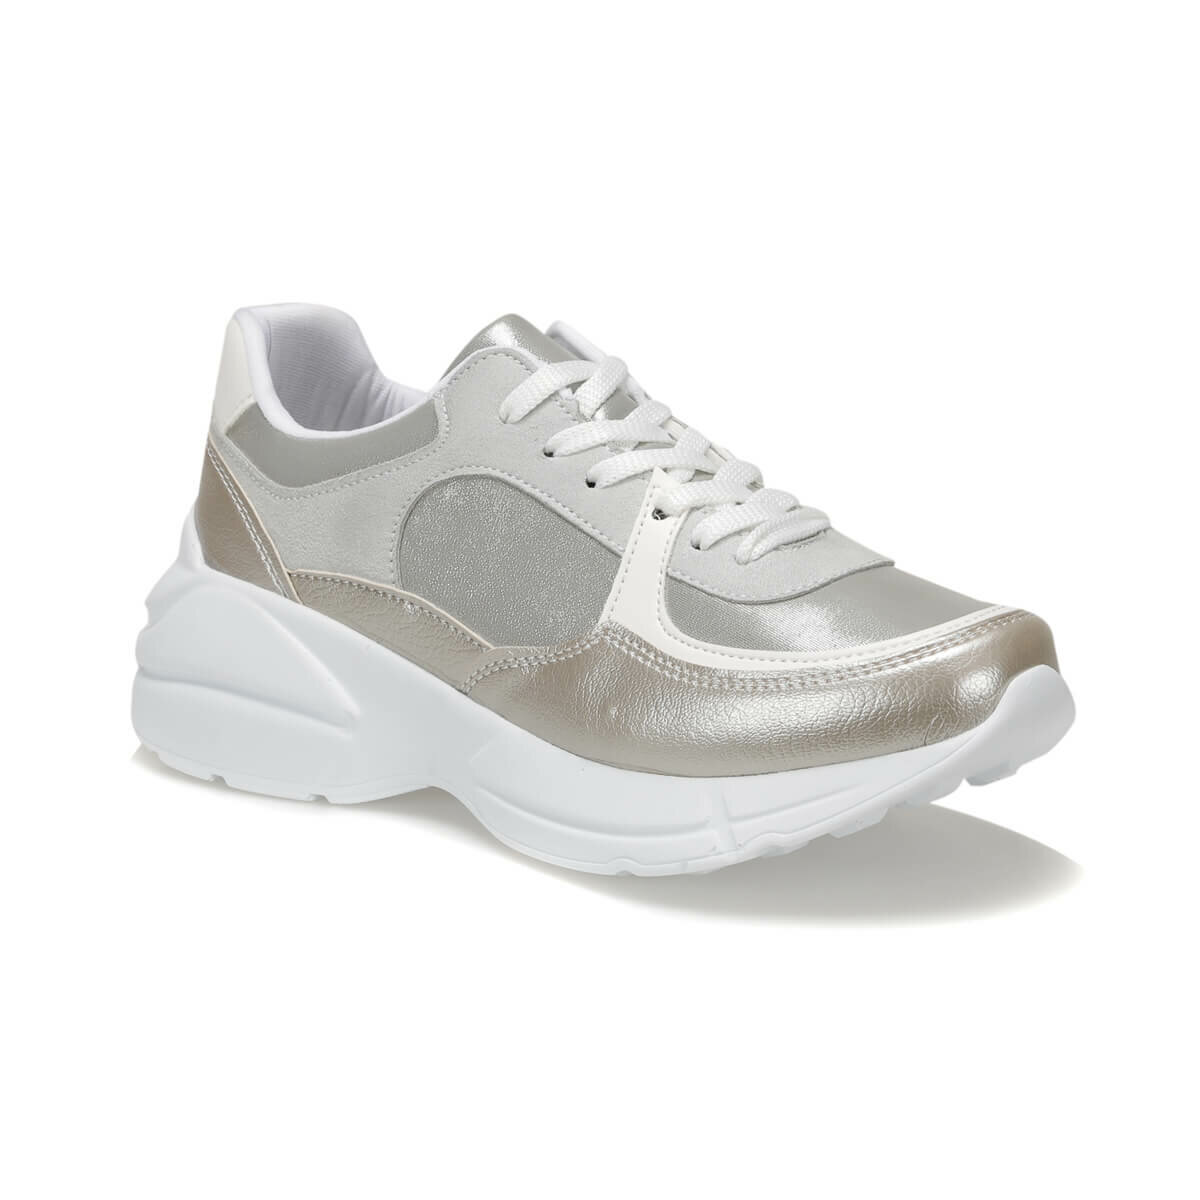 FLO REYN77Z SKIN Gray Women 'S Sneaker Shoes BUTIGO